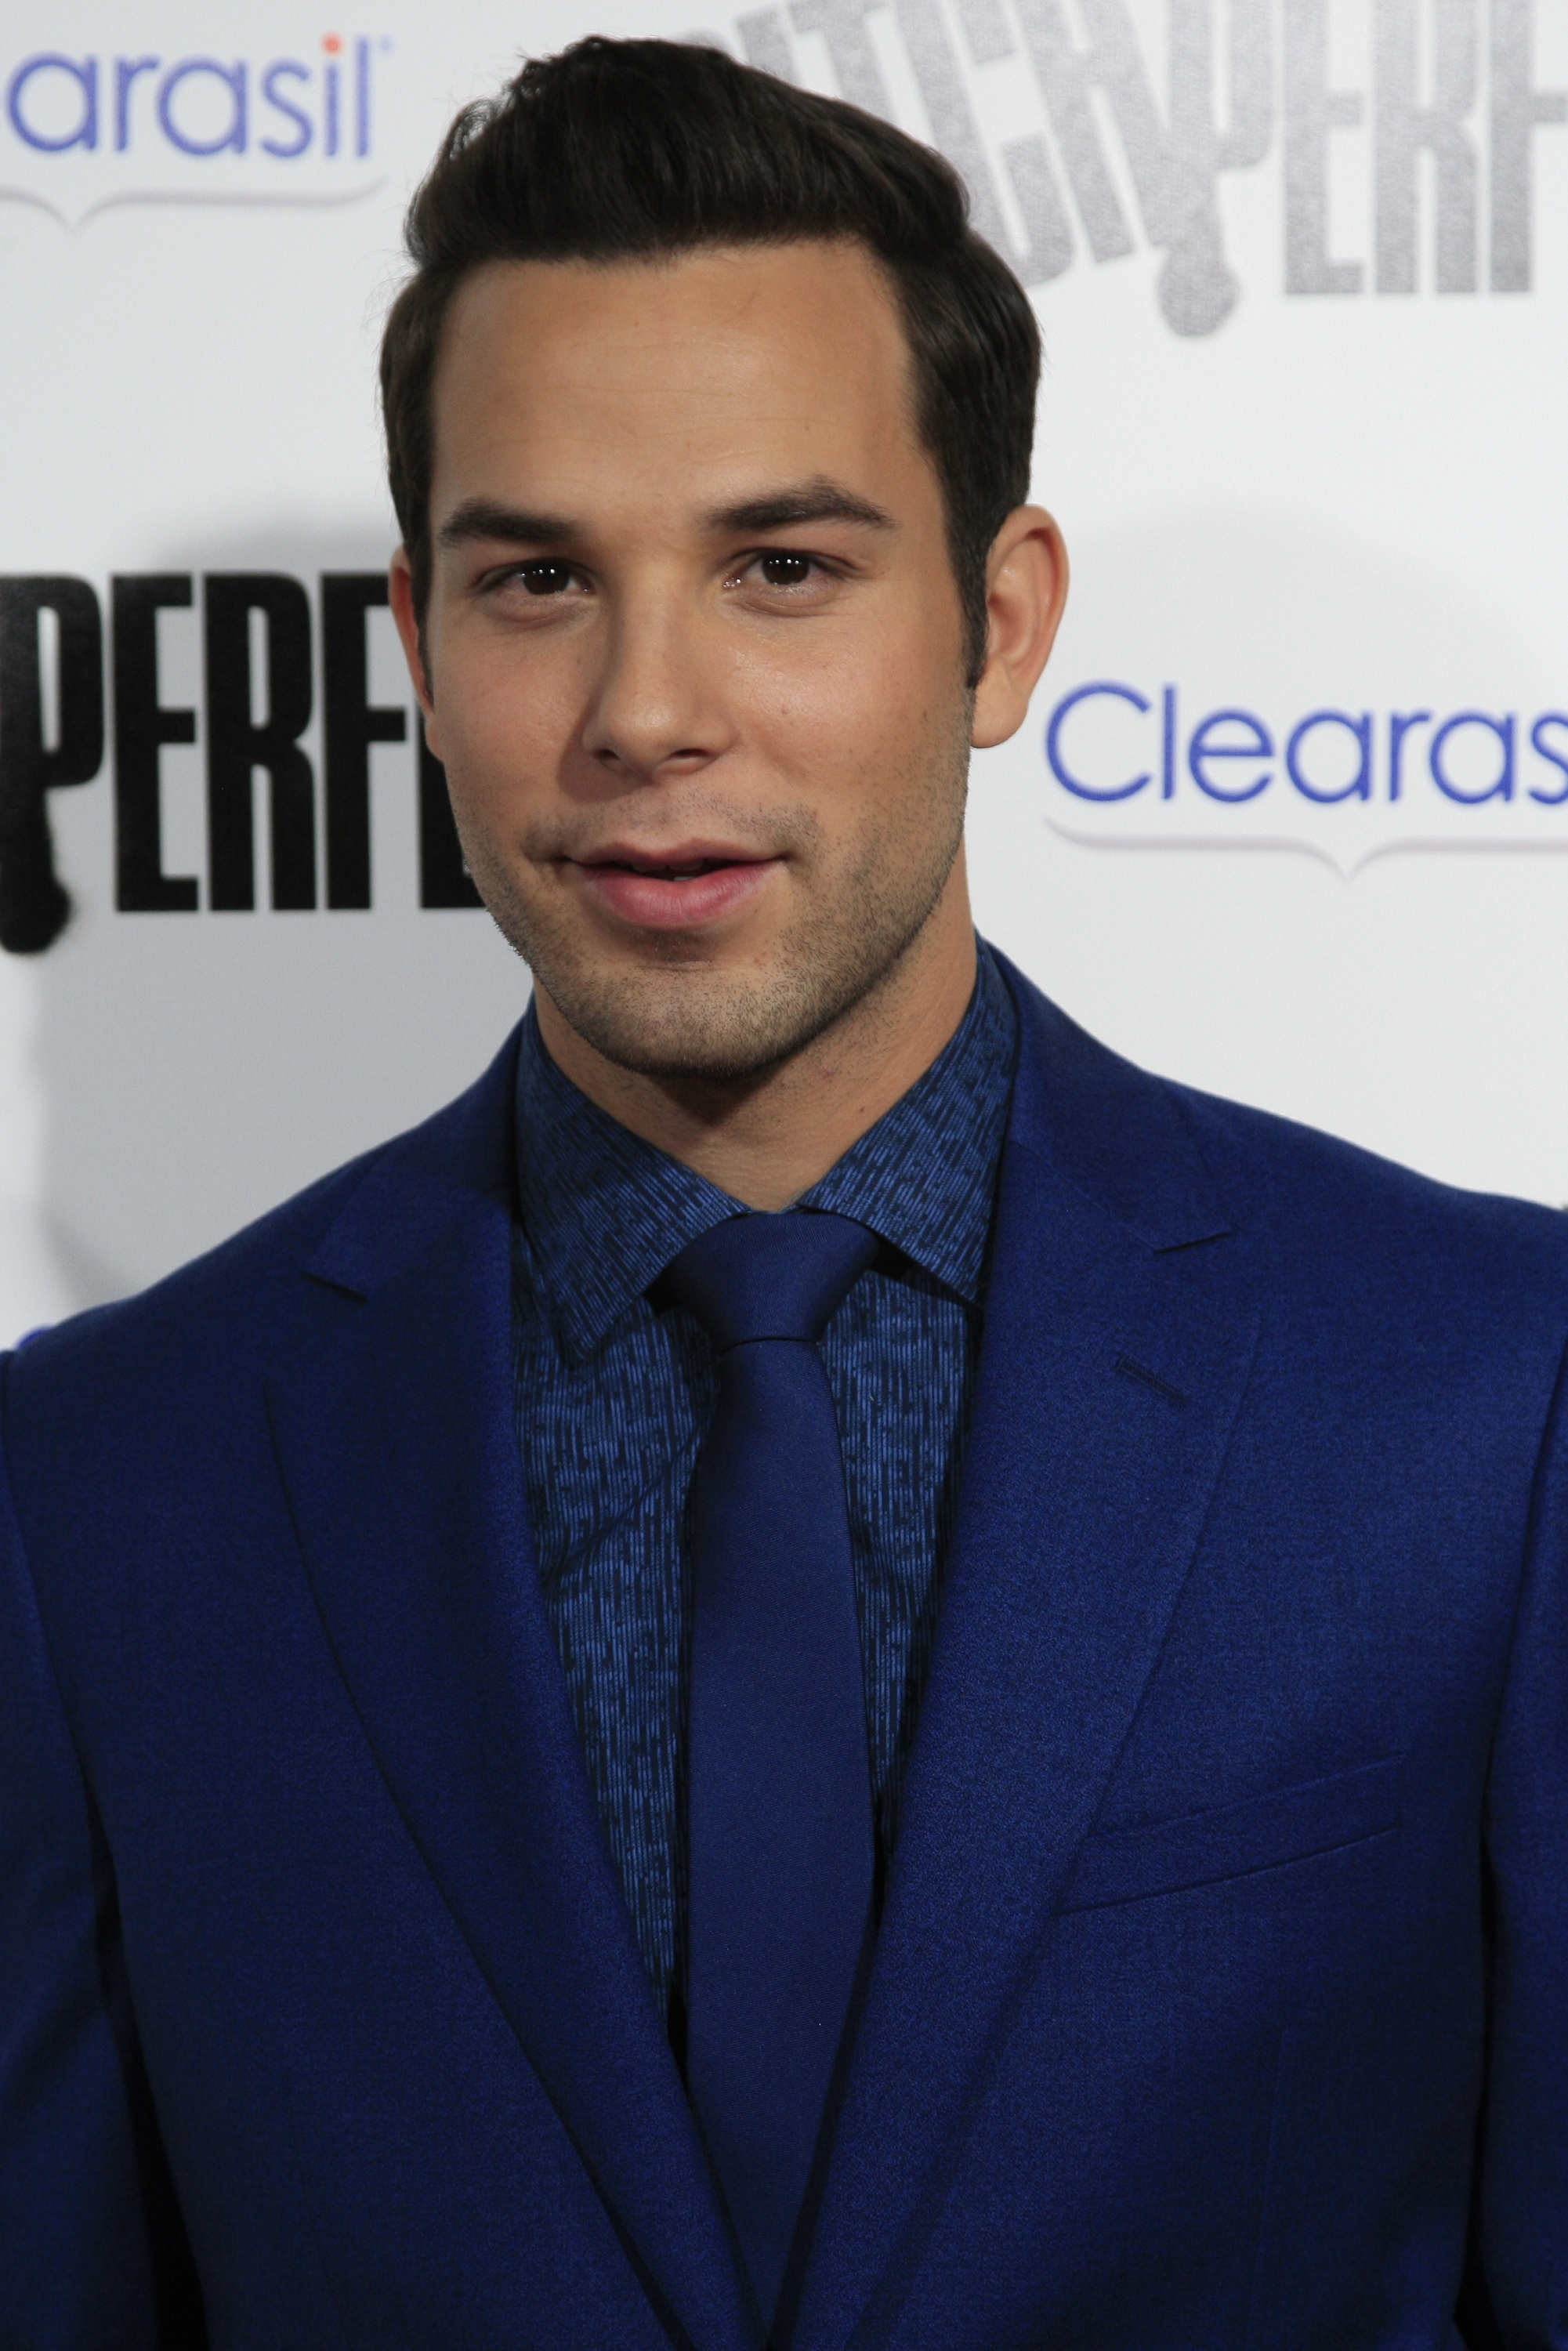 skylar astin images skylar astin hd wallpaper and